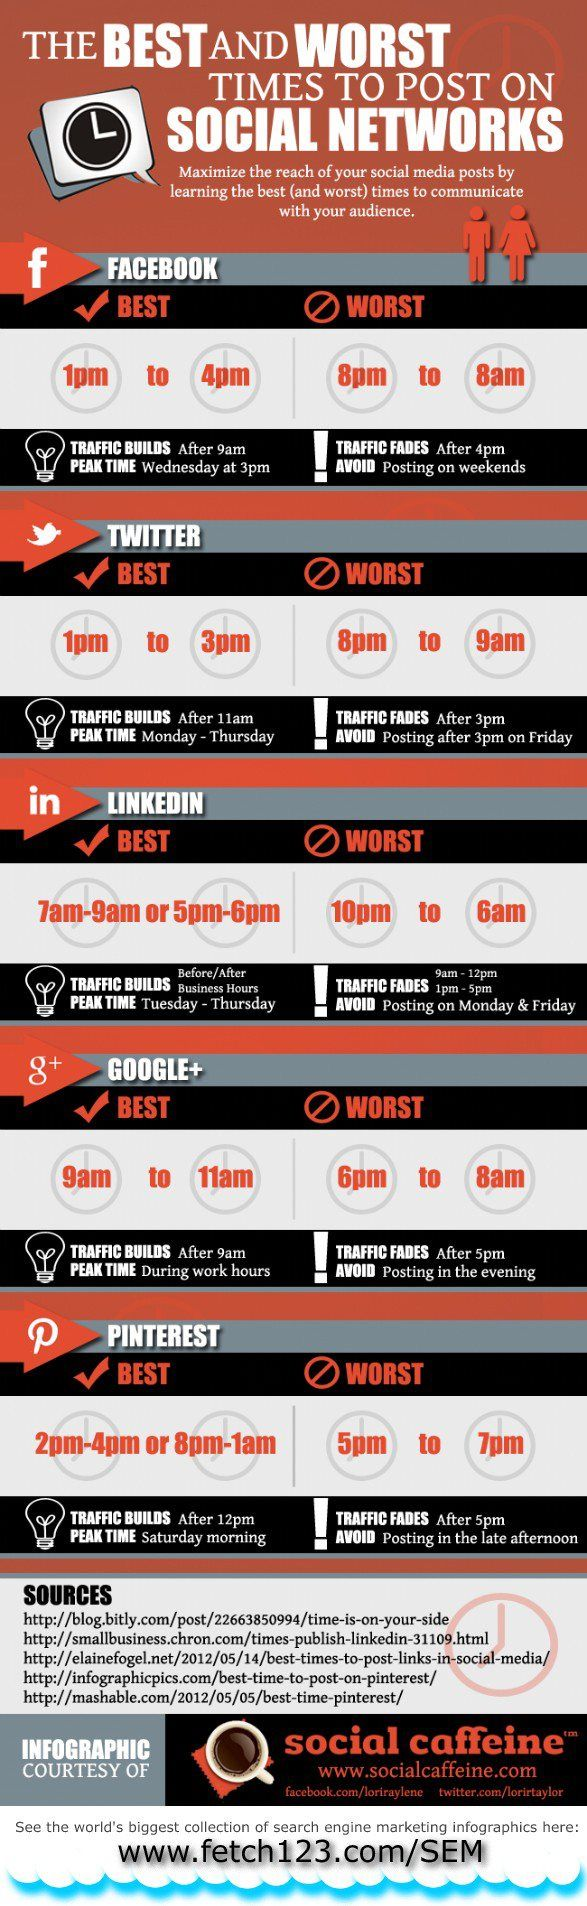 Infographic definition of integrity